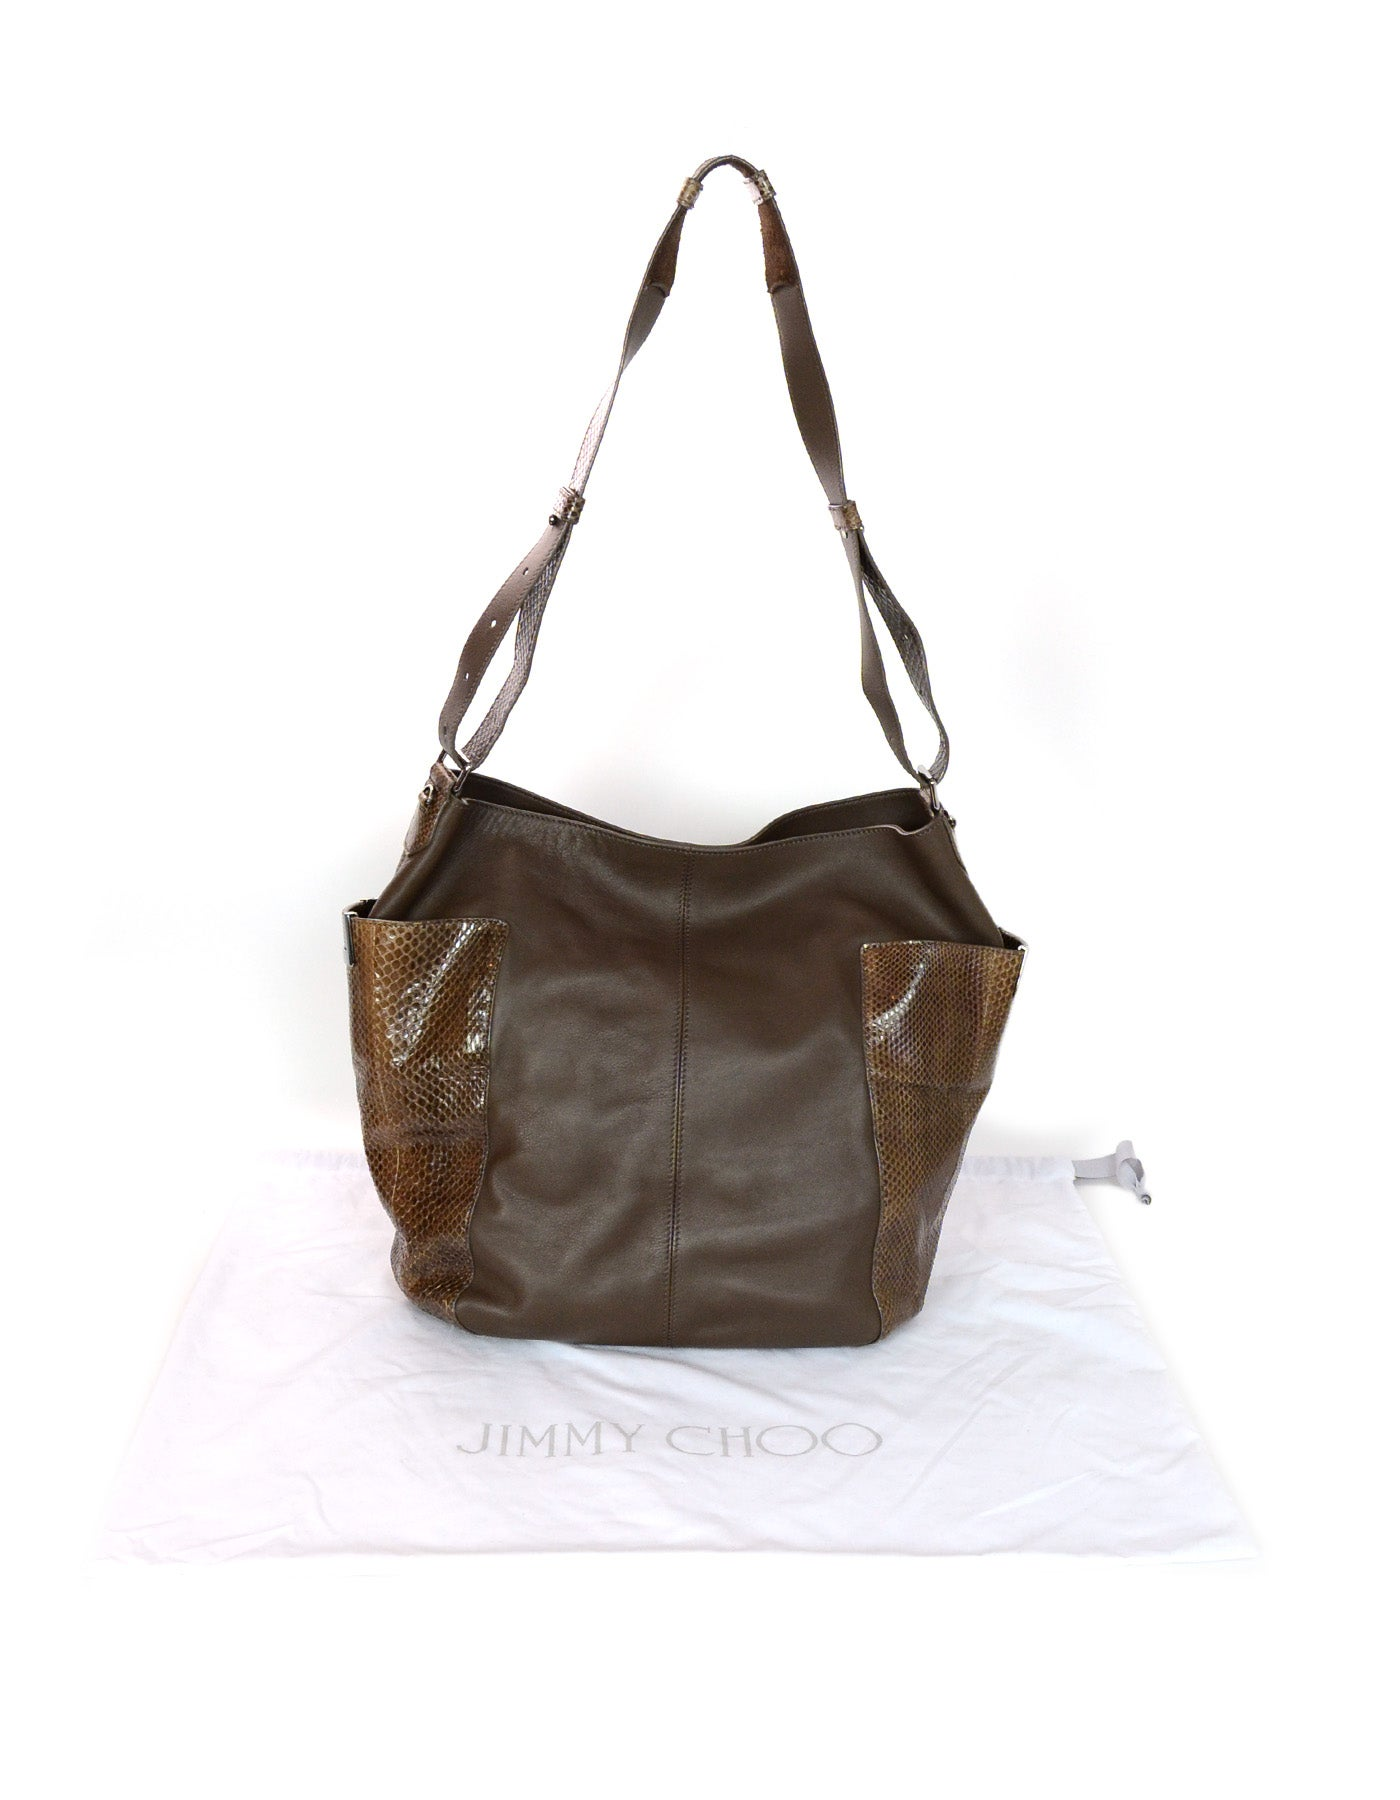 de29a4e47e4a Jimmy Choo Brown Leather and Snakeskin Anna Hobo Bag w  Side Pockets For  Sale at 1stdibs